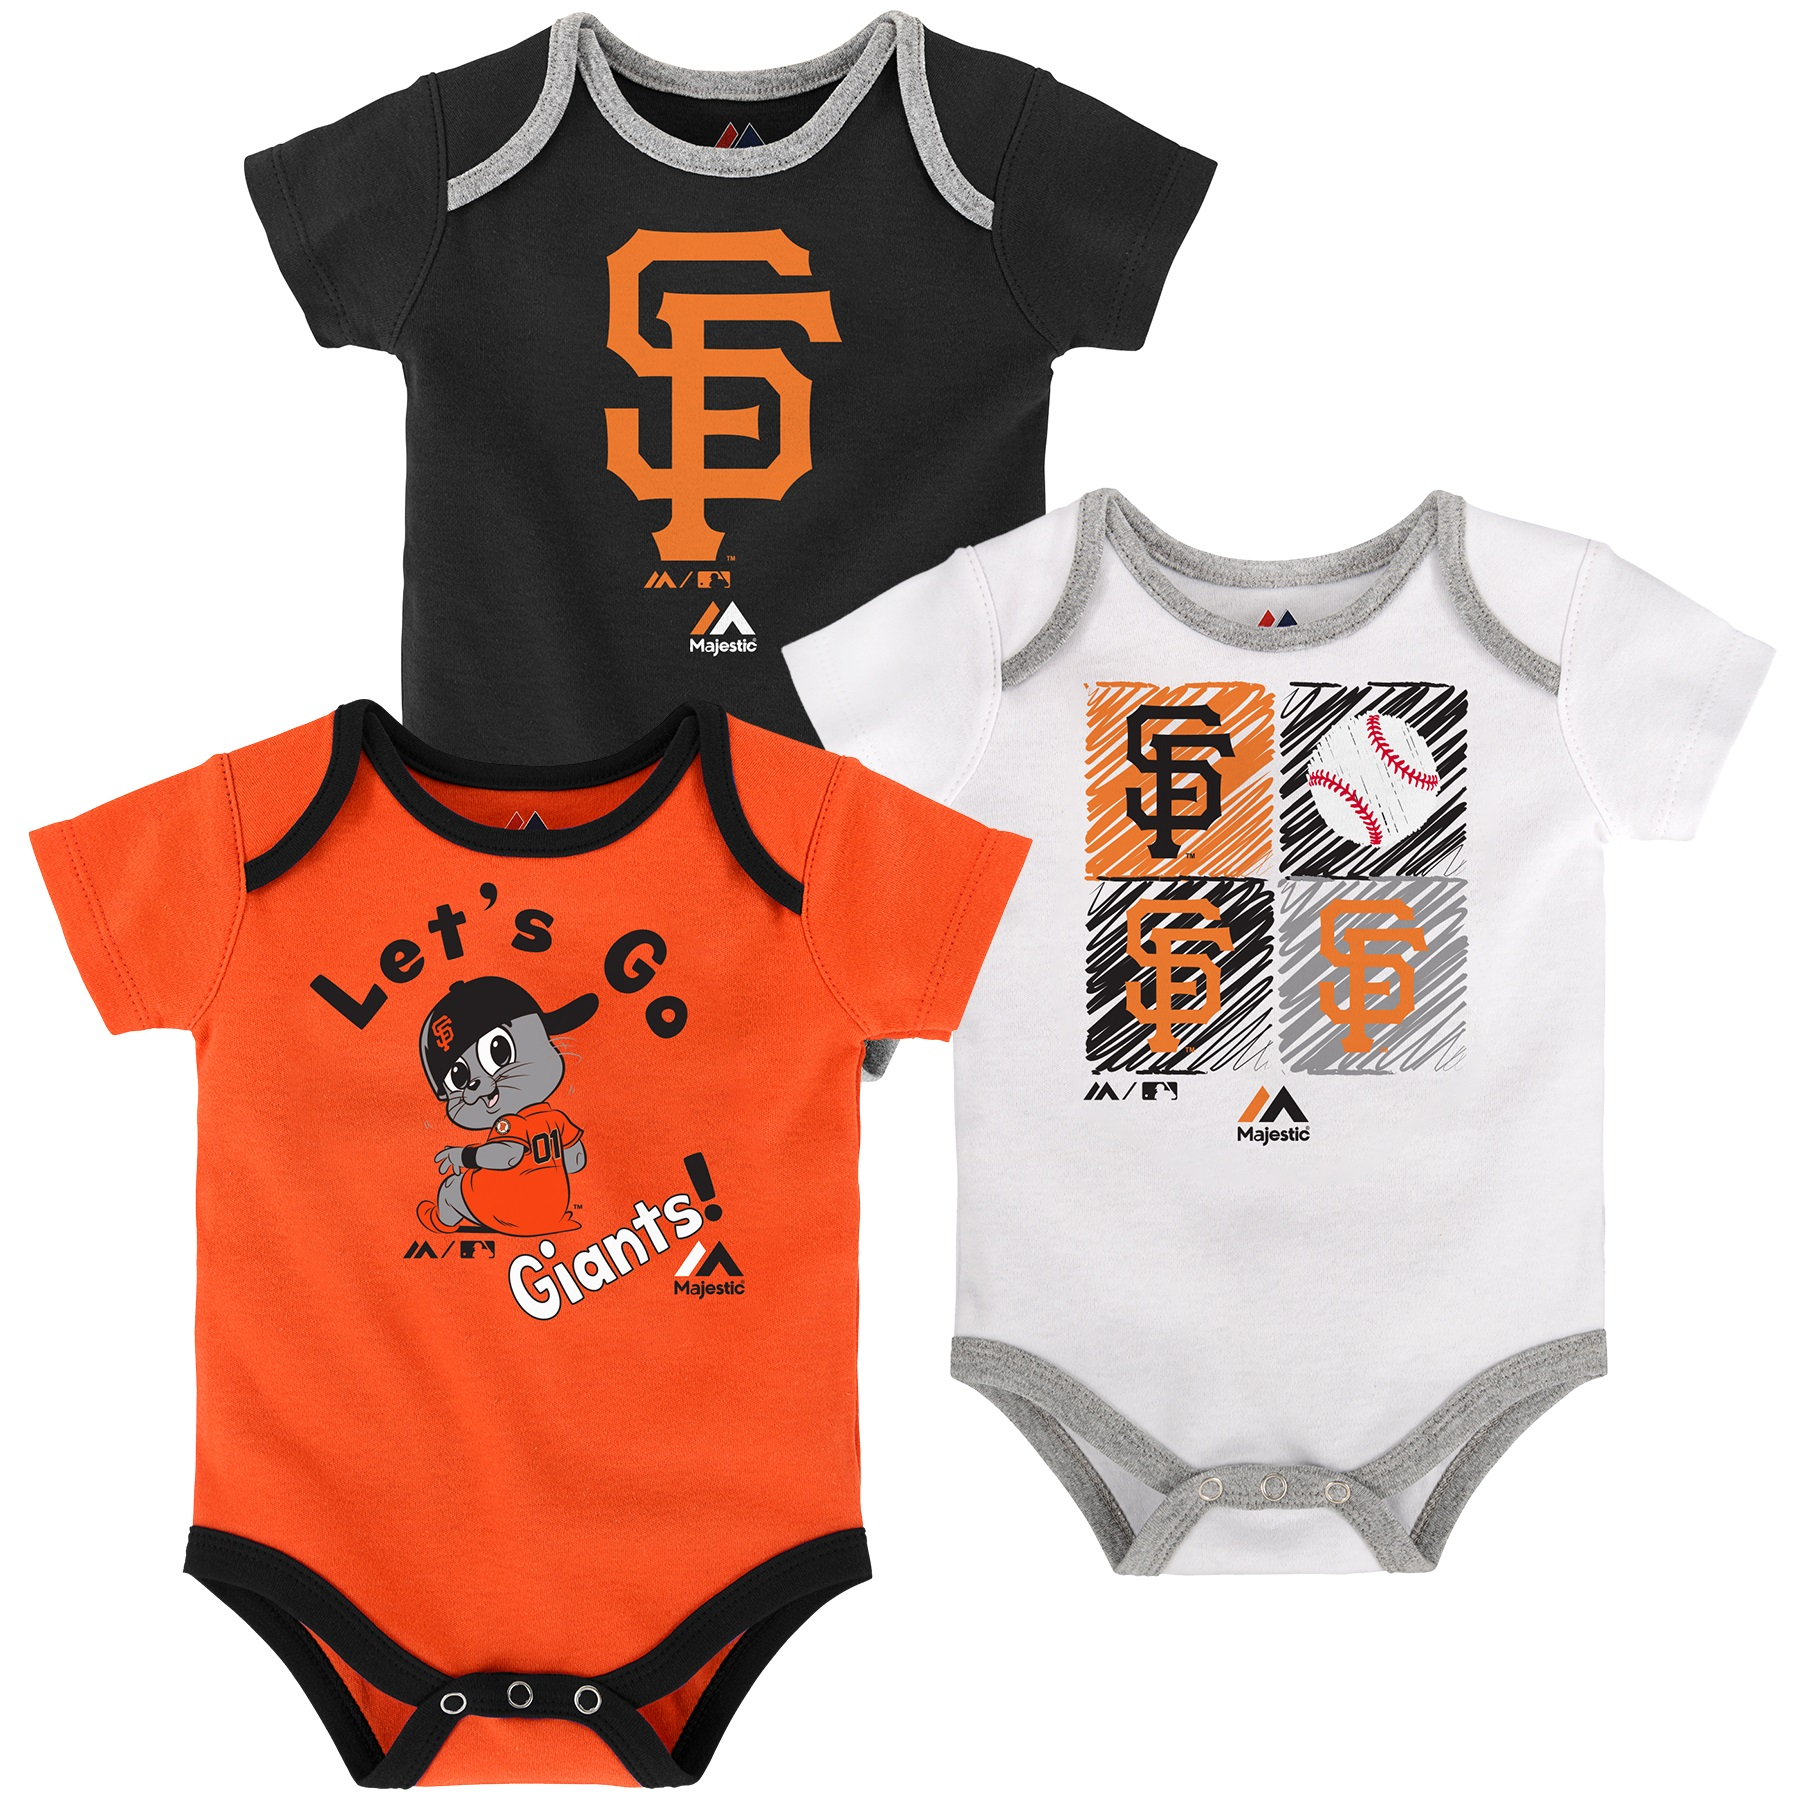 San Francisco Giants Majestic Newborn & Infant Go Team 3-Pack Bodysuit Set - Black/Orange/White